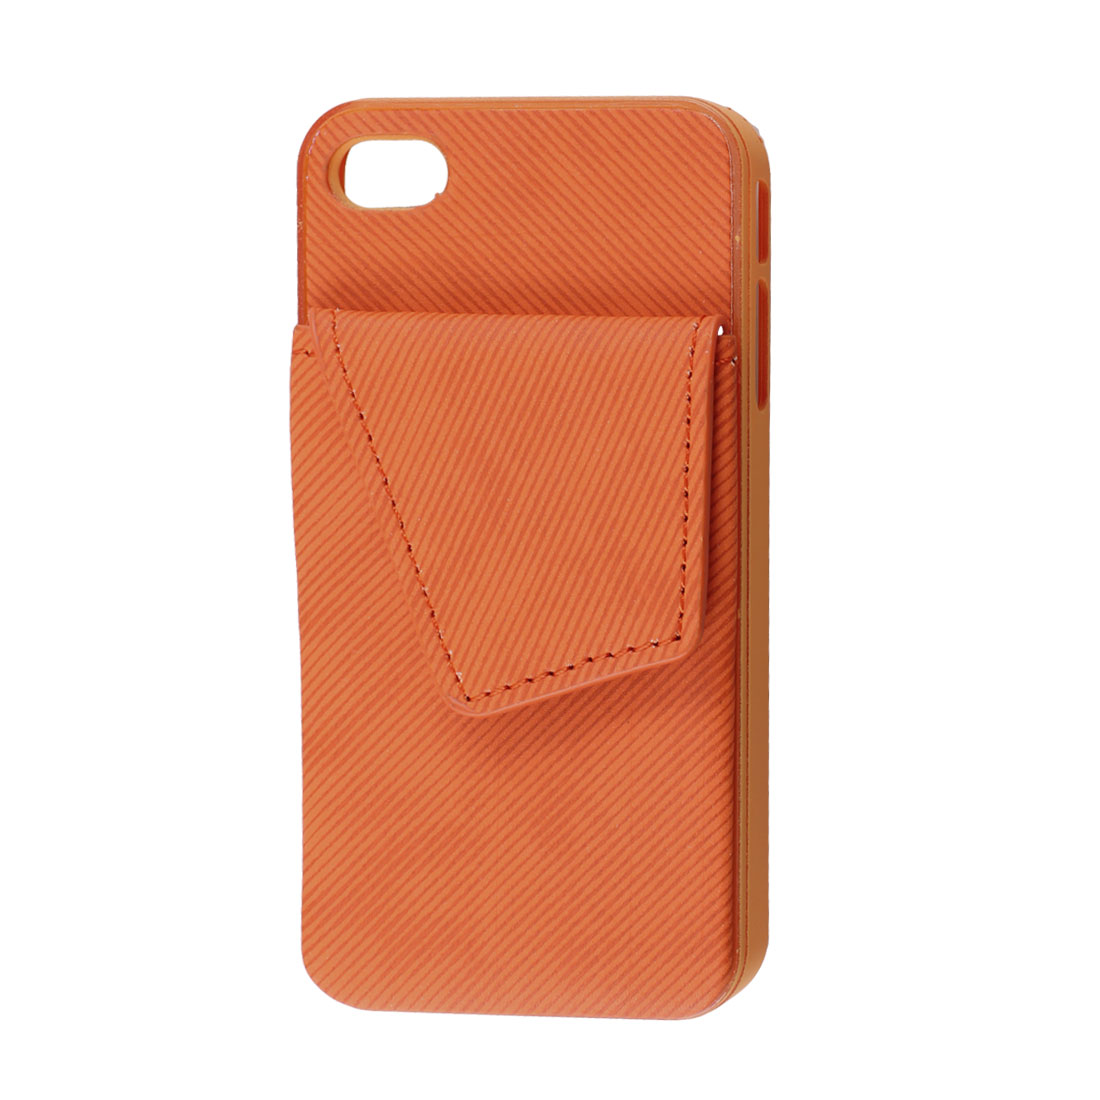 Orange Red Faux Leather Plastic Rim Credit Card Back Case Pouch for iPhone 4G